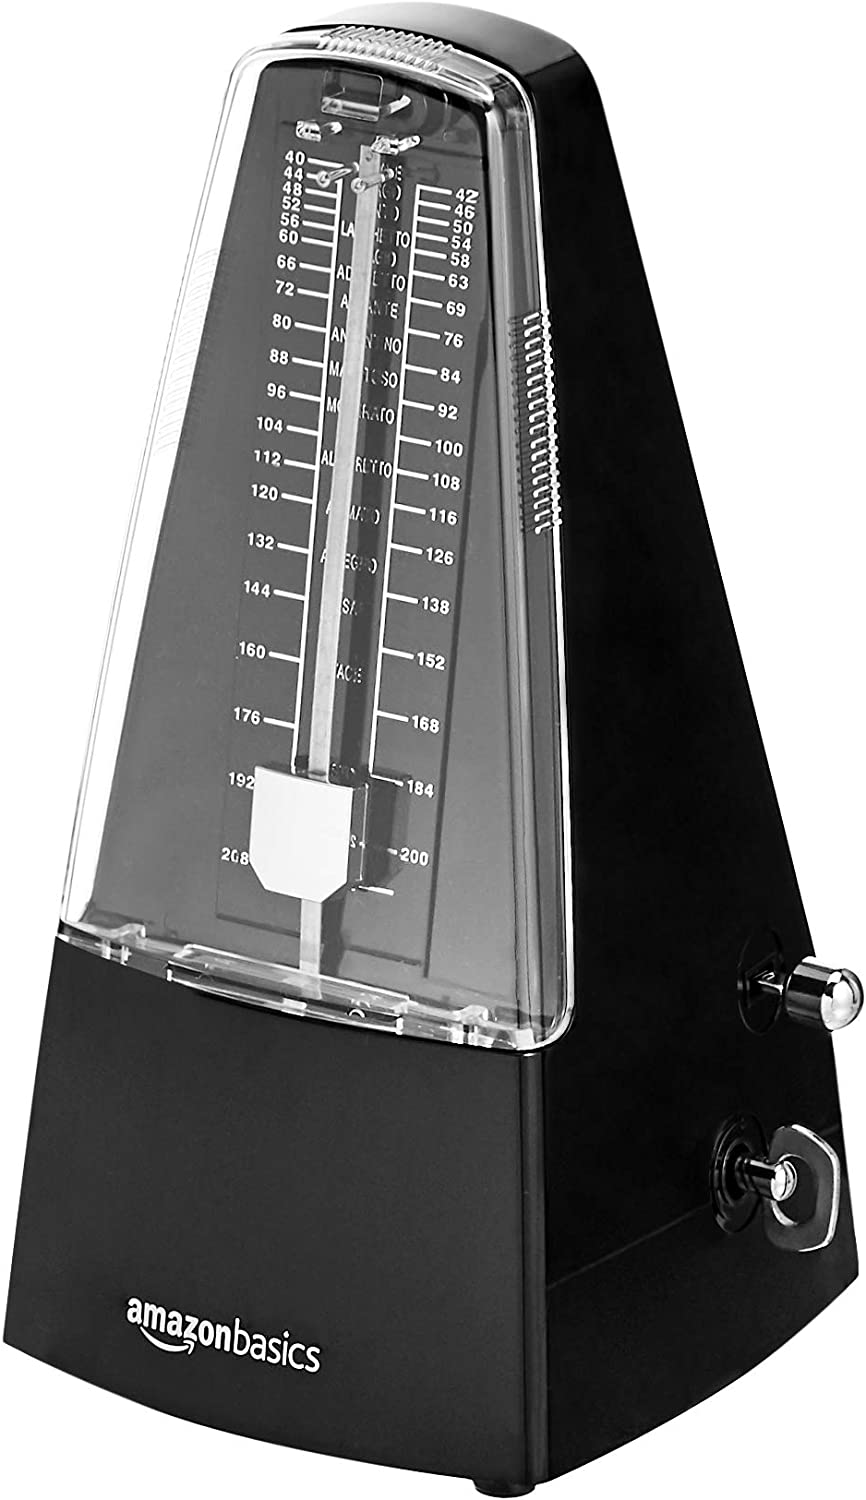 AmazonBasics Mechanical Metronome - Steel Movement - Black